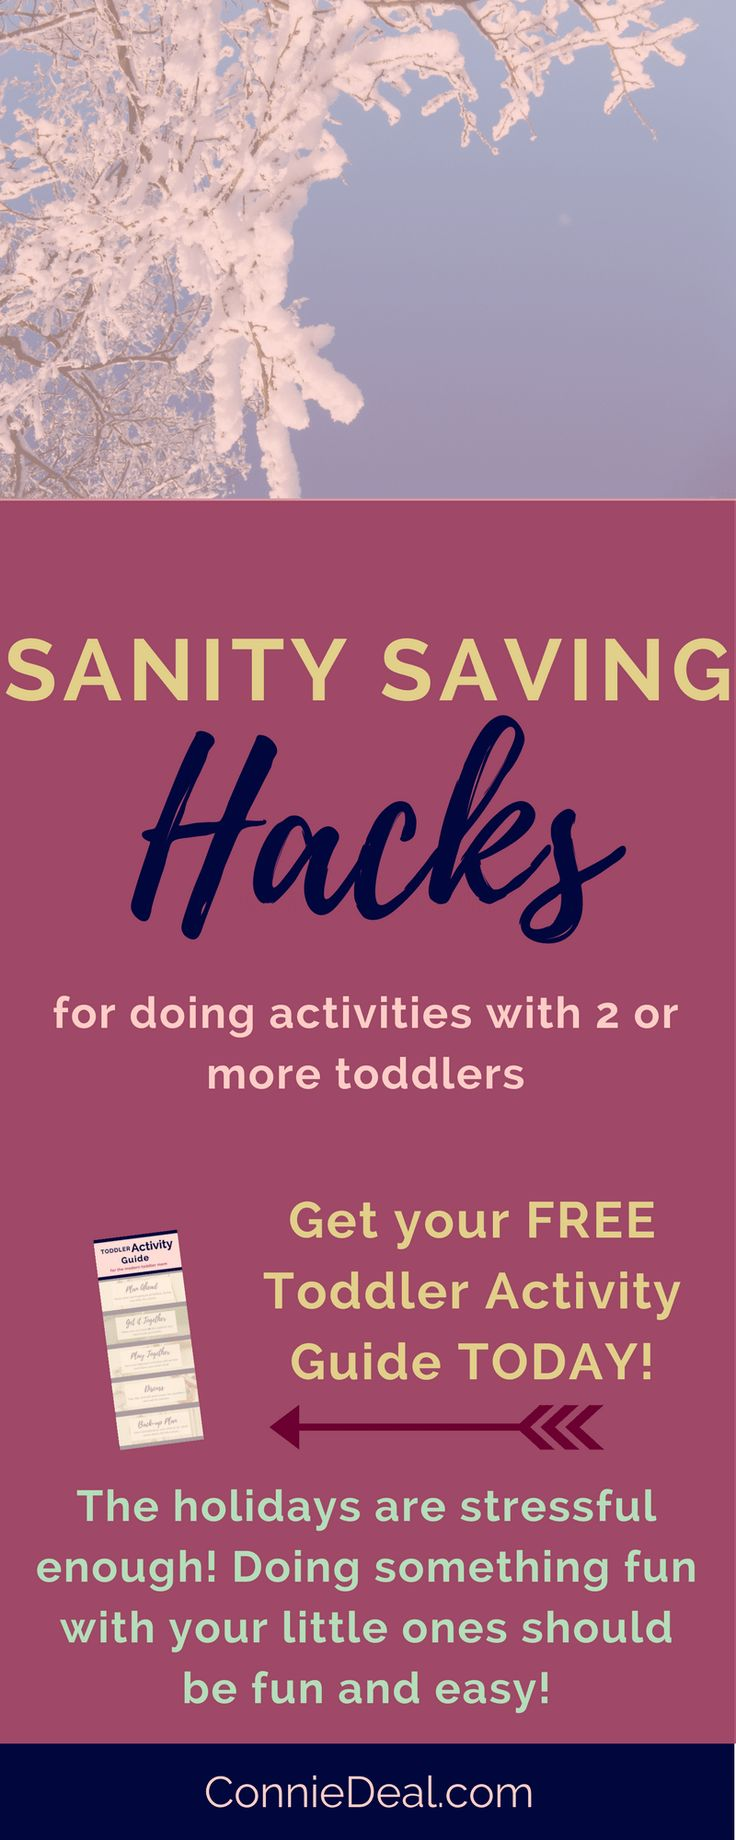 Not sure how to easily go about doing activities with two toddlers? Grab this FREE activity guide full of strategies and tips you can use NOW to make it easier to do art, science, cooking, crafts, etc. with your two little ones, from Lessons and Learning for Littles. #toddleractivity #toddlermom #toddlerart #toddlerscience #2u2